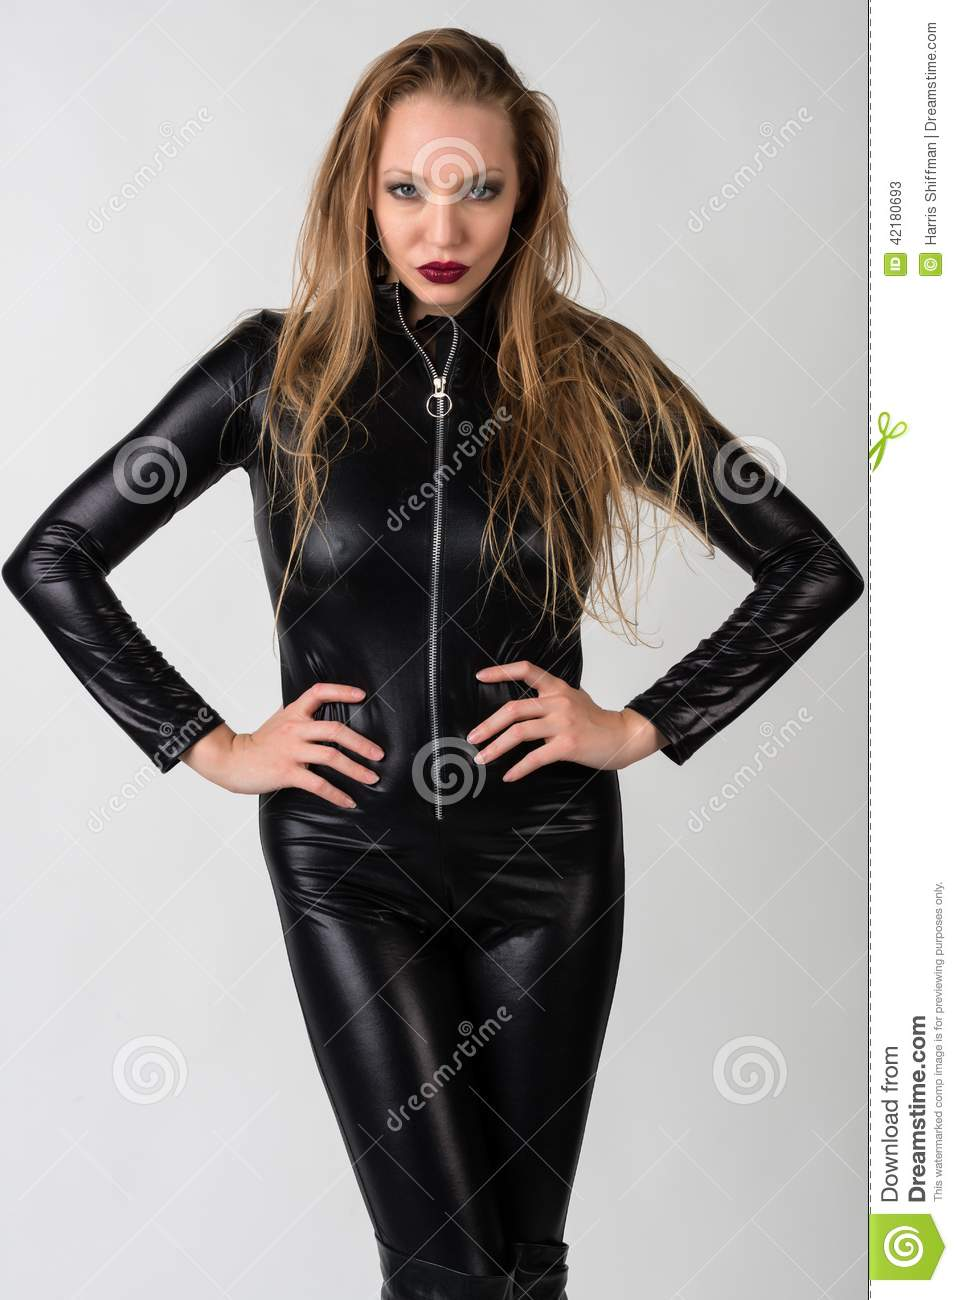 Ready help Blonde latex catsuit information